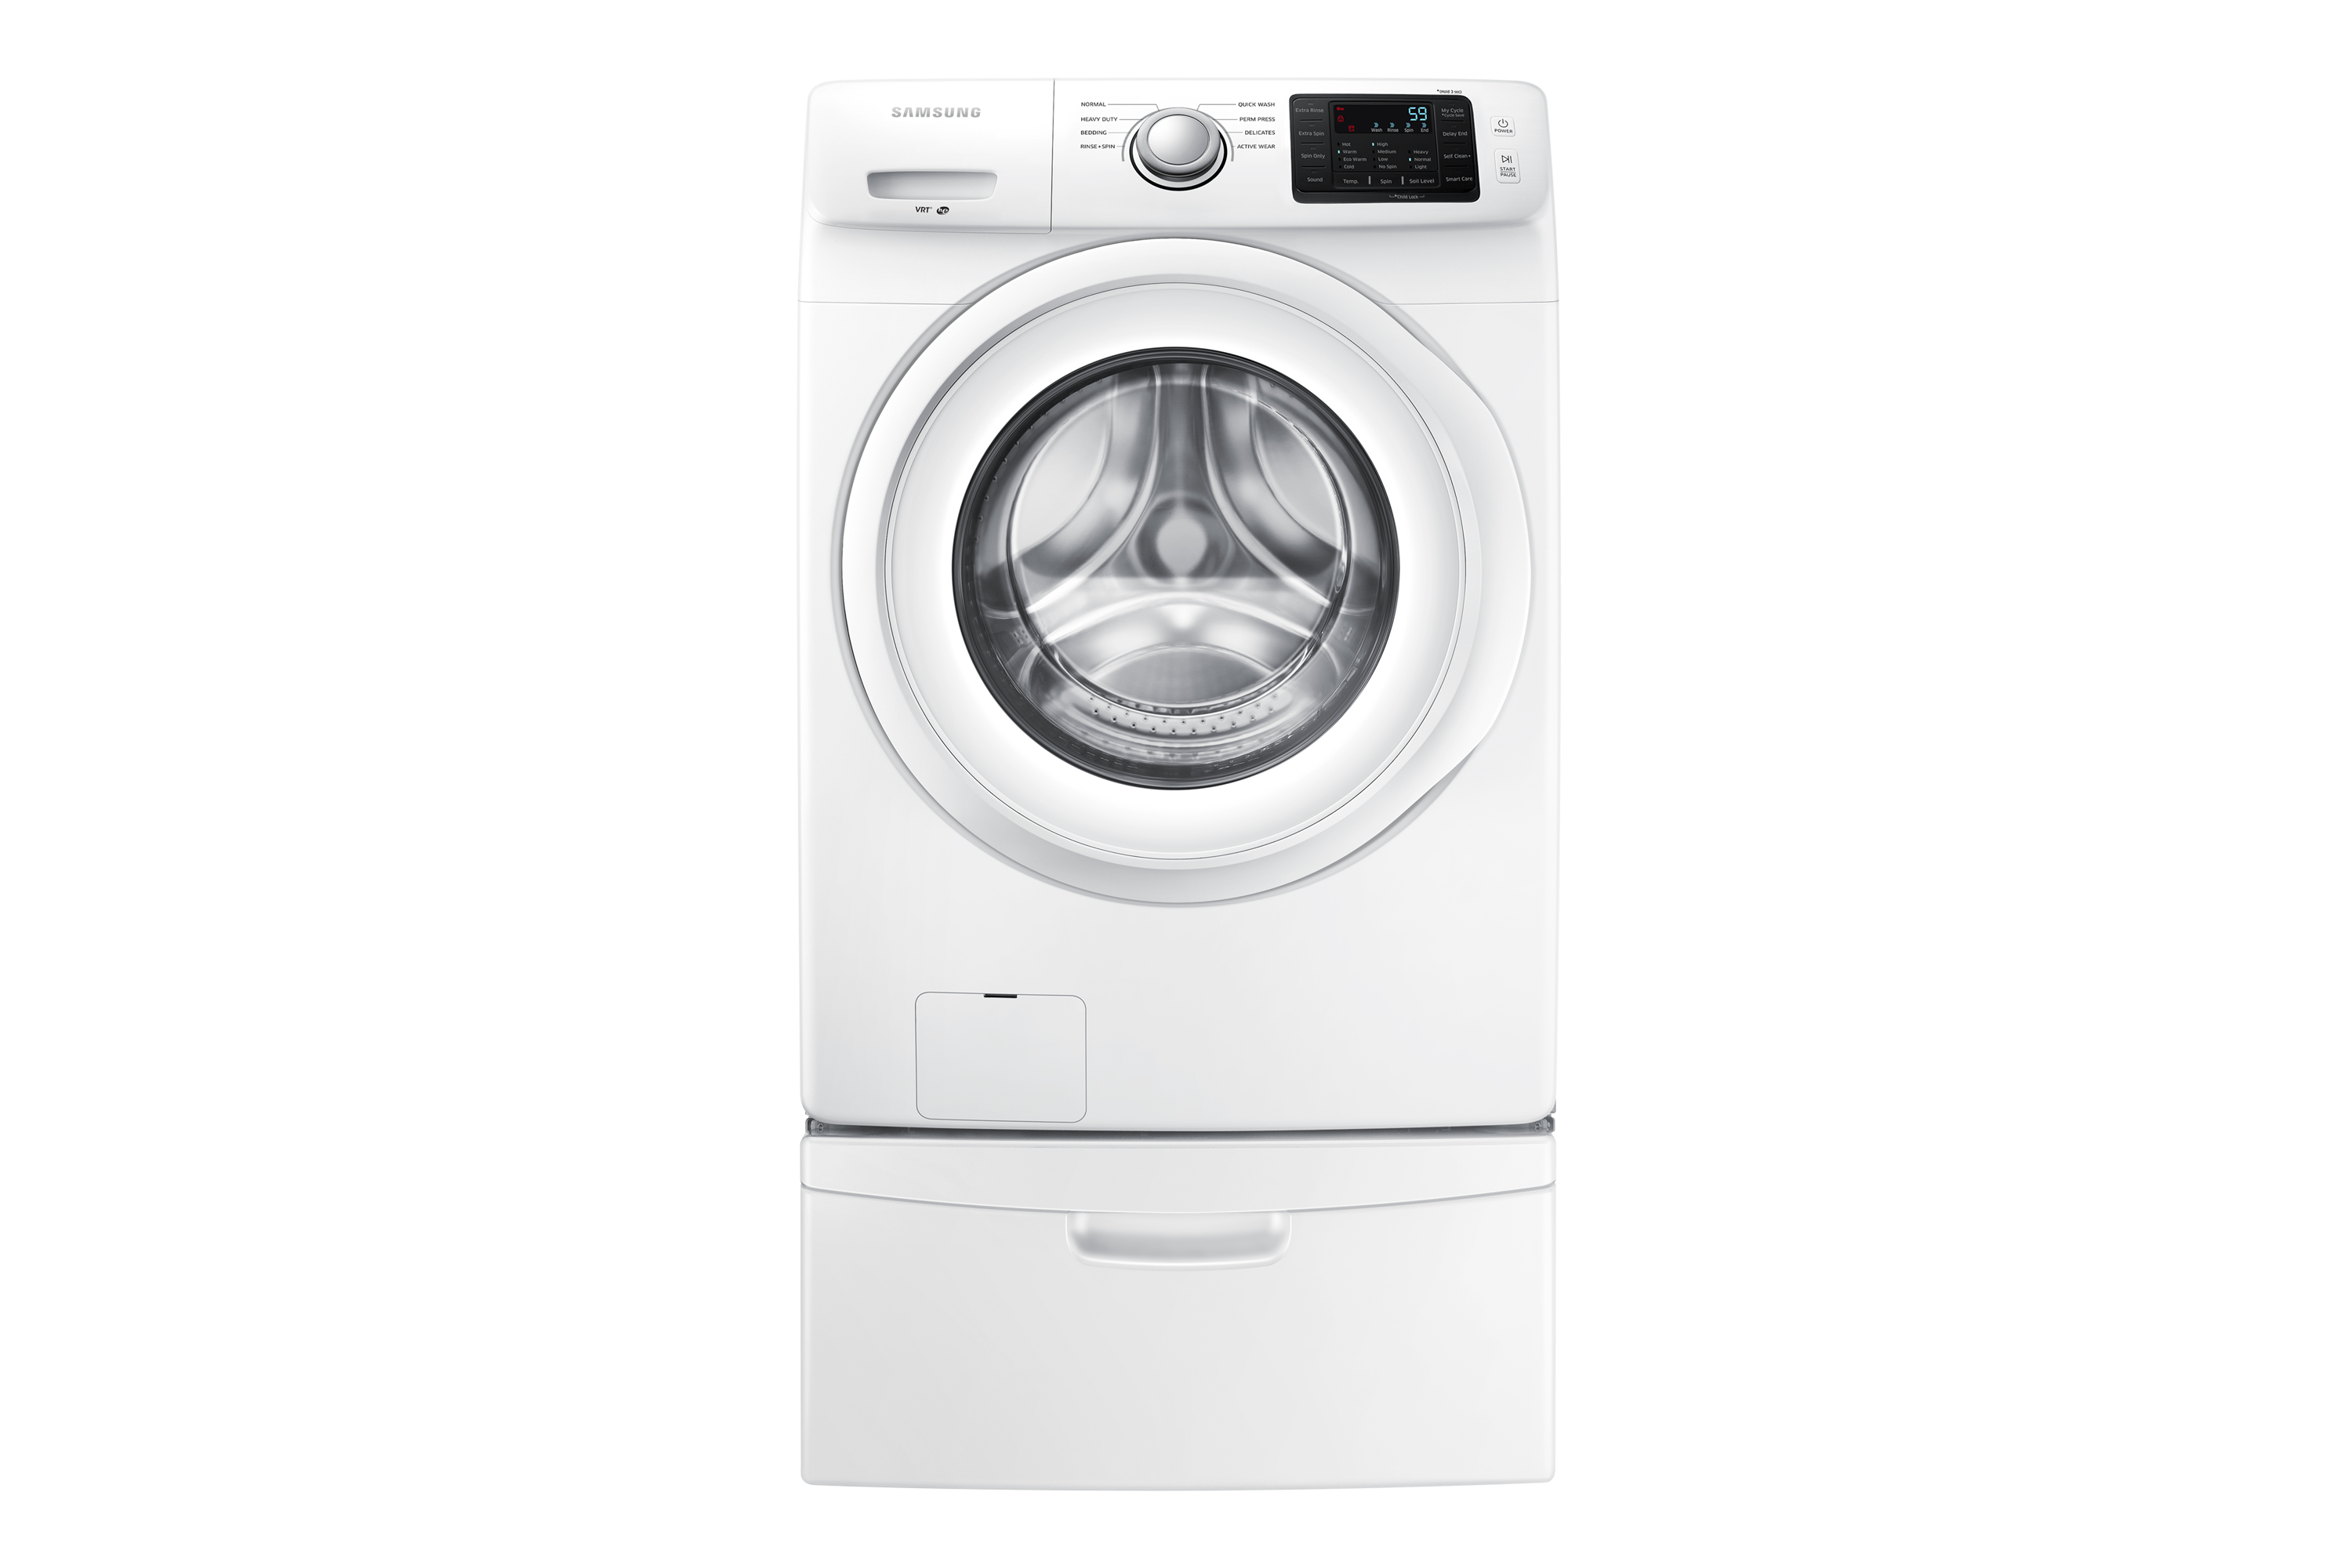 Samsung Wf42h5000aw Front Load Washer With Smart Care 4 8